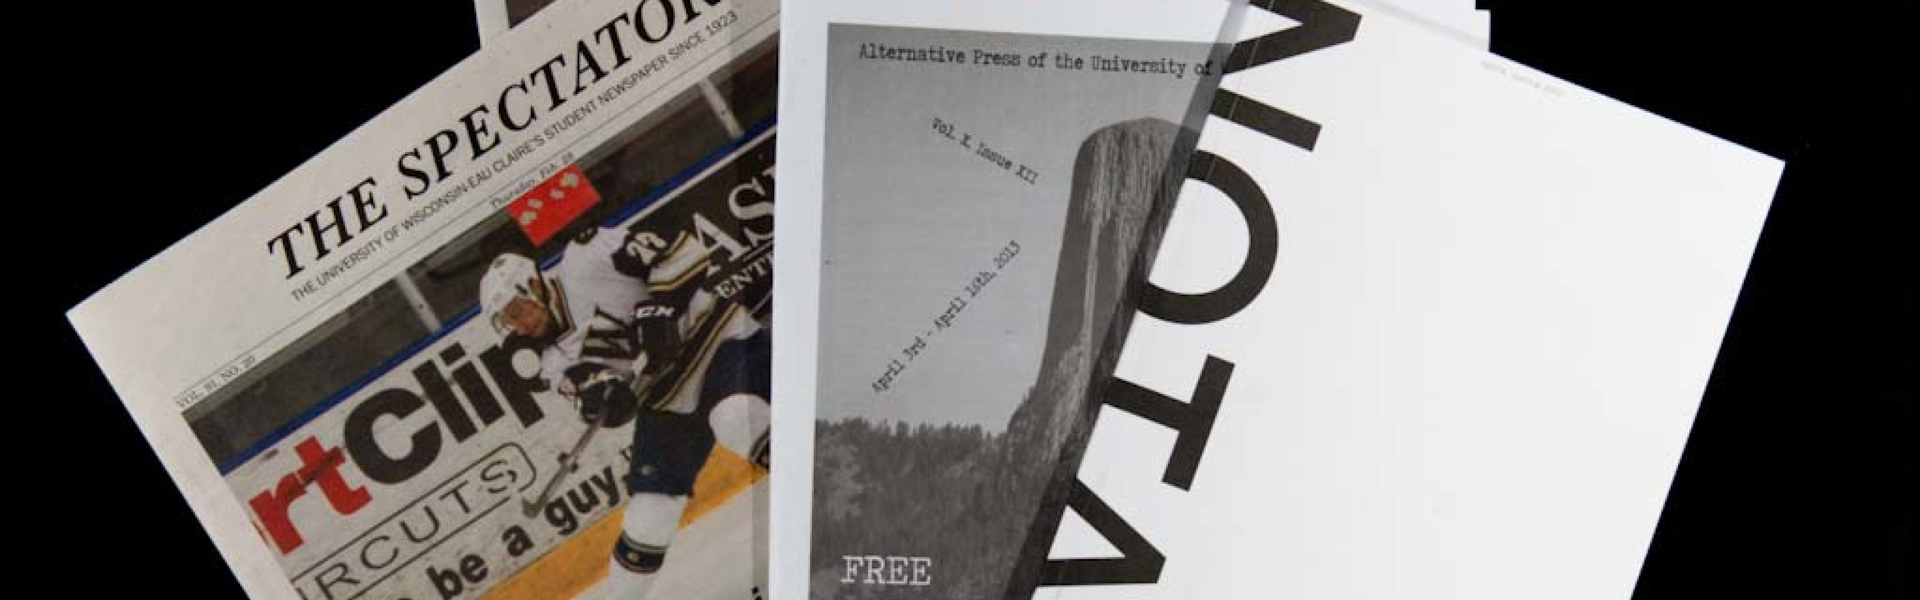 Various UWEC student publications